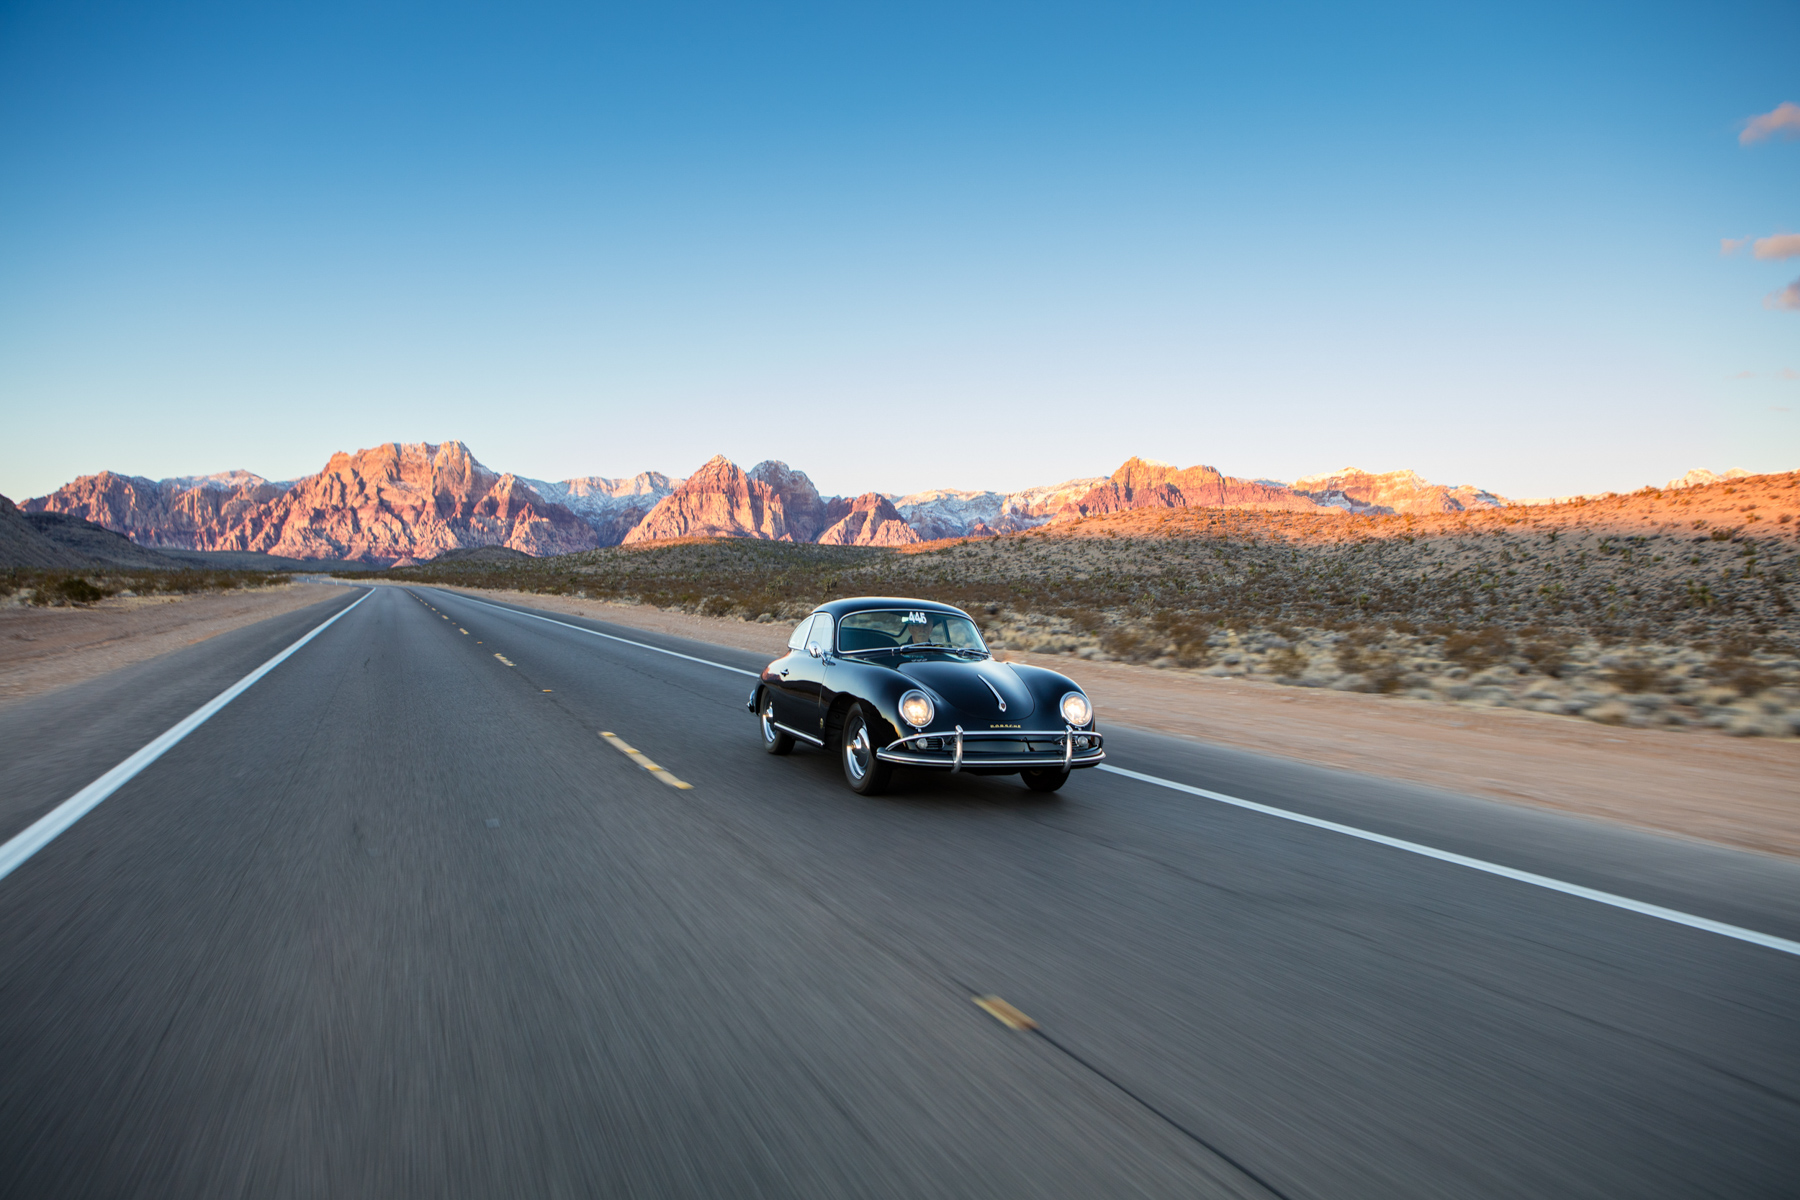 Lifestyle action photo of classic vintage Porsche driving in Red Rocks, Nevada.